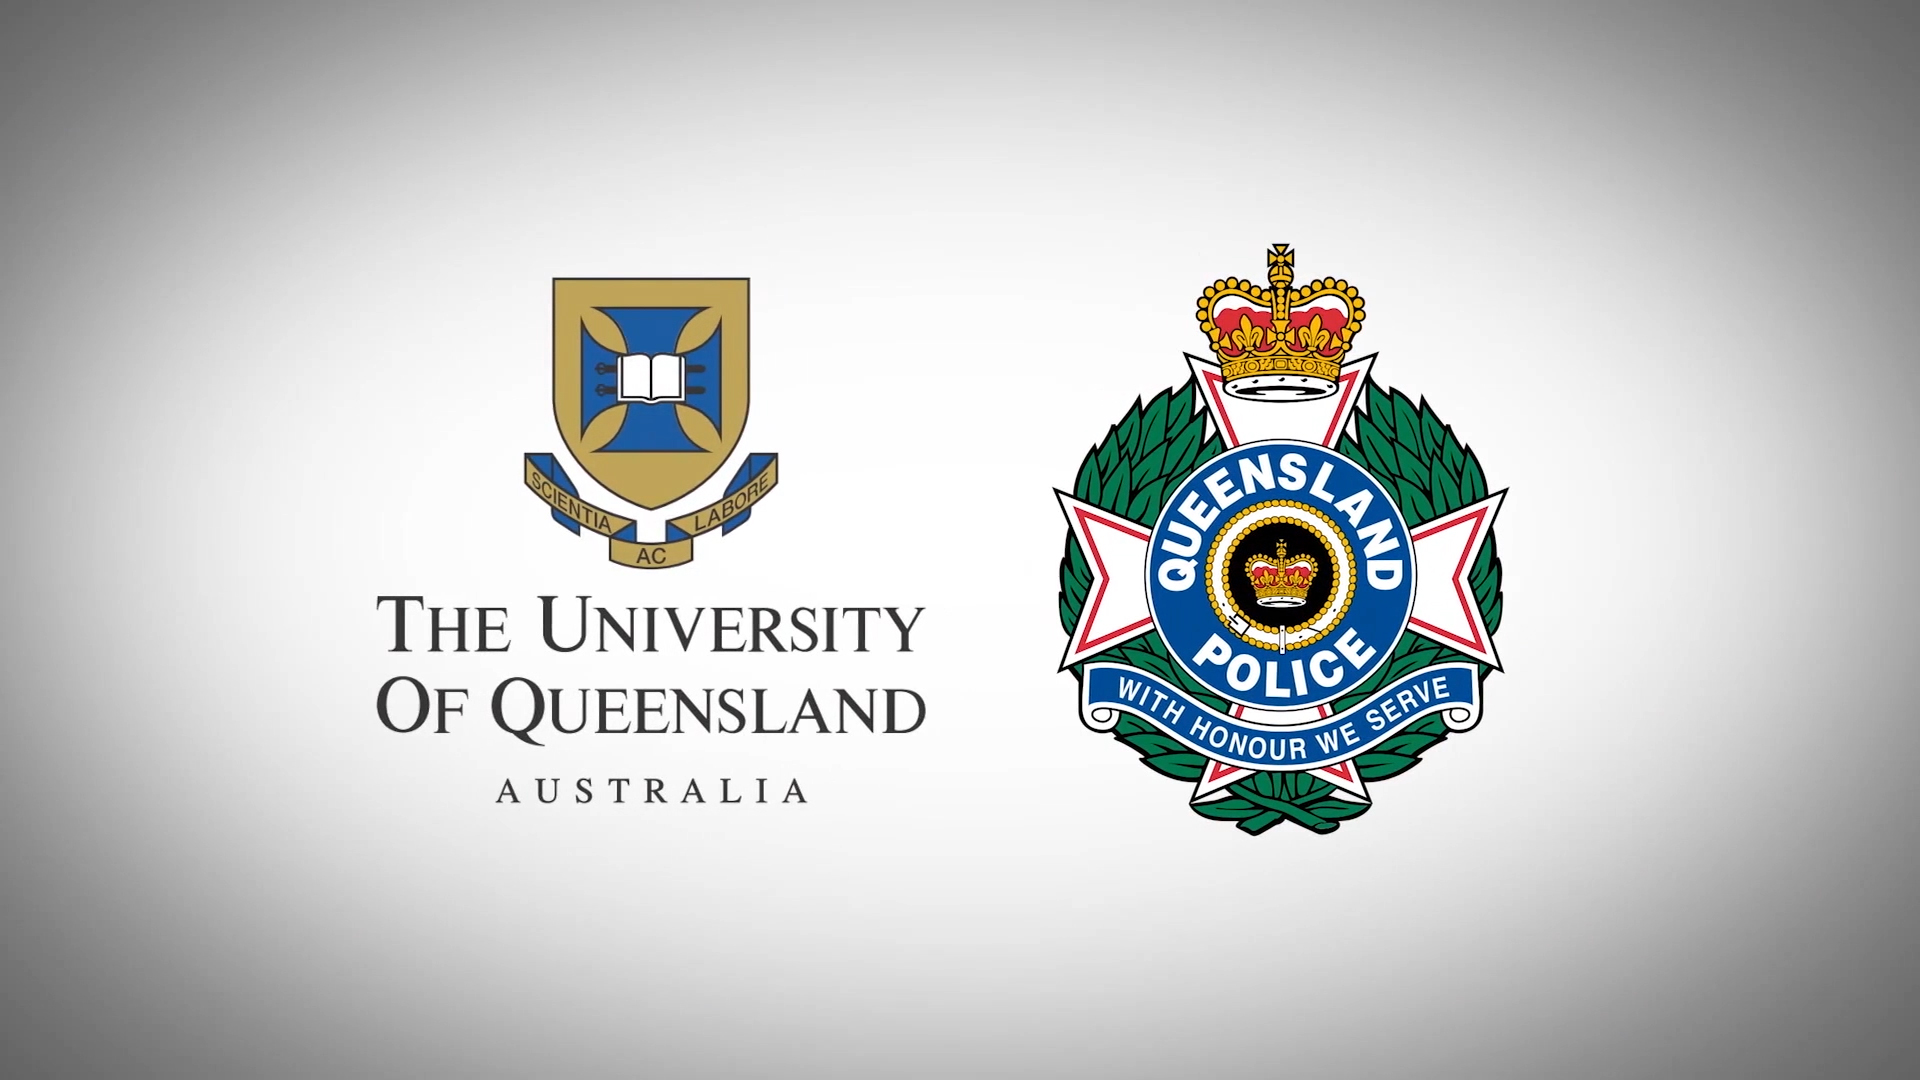 Police work is complex and challenging, and nowhere is this more exemplified than in the diverse range work the Queensland Police Service, in a state almost three times the size of Texas. With a focus on ethical practice based on evidence, QPS actively collaborate with the University of Queensland on broadening this evidence base.